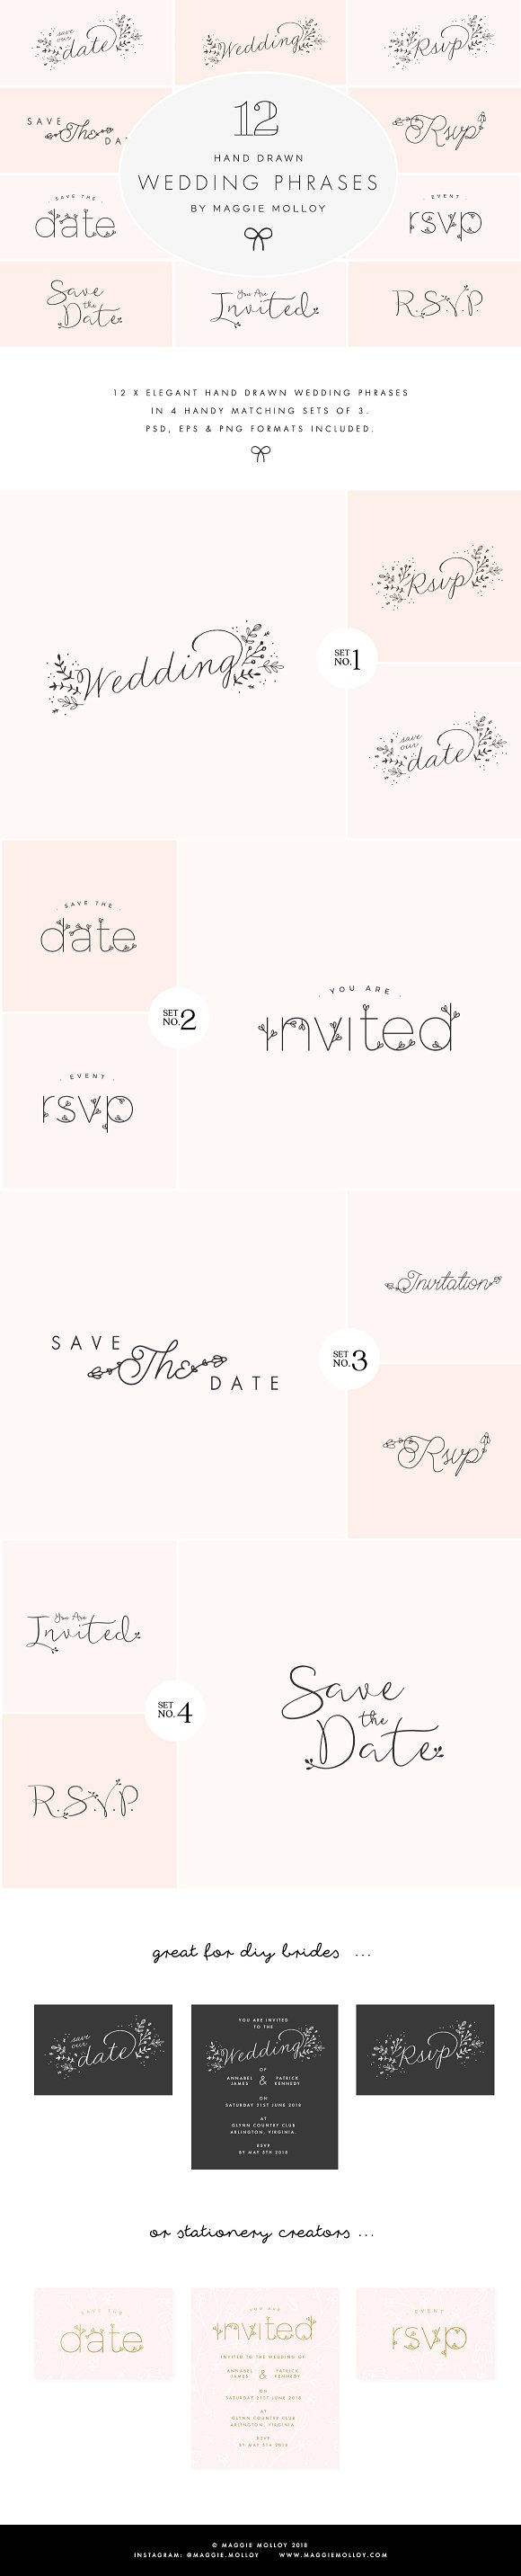 Hand Drawn Wedding Art EPS PSD PNG